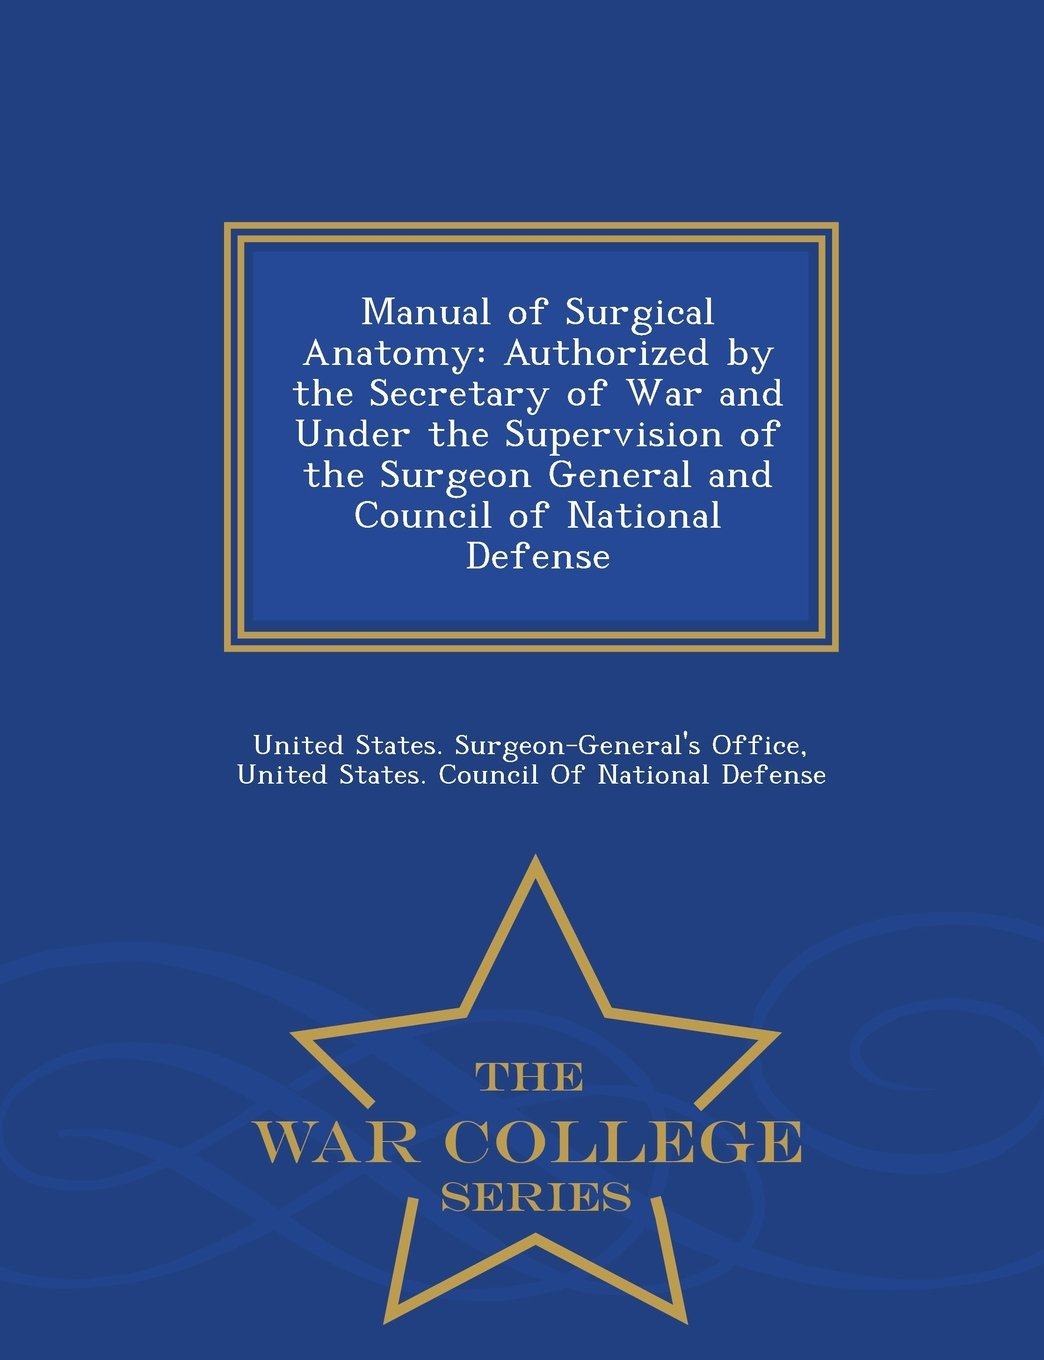 Manual of Surgical Anatomy: Authorized by the Secretary of War and Under the Supervision of the Surgeon General and Council of National Defense - War College Series ebook